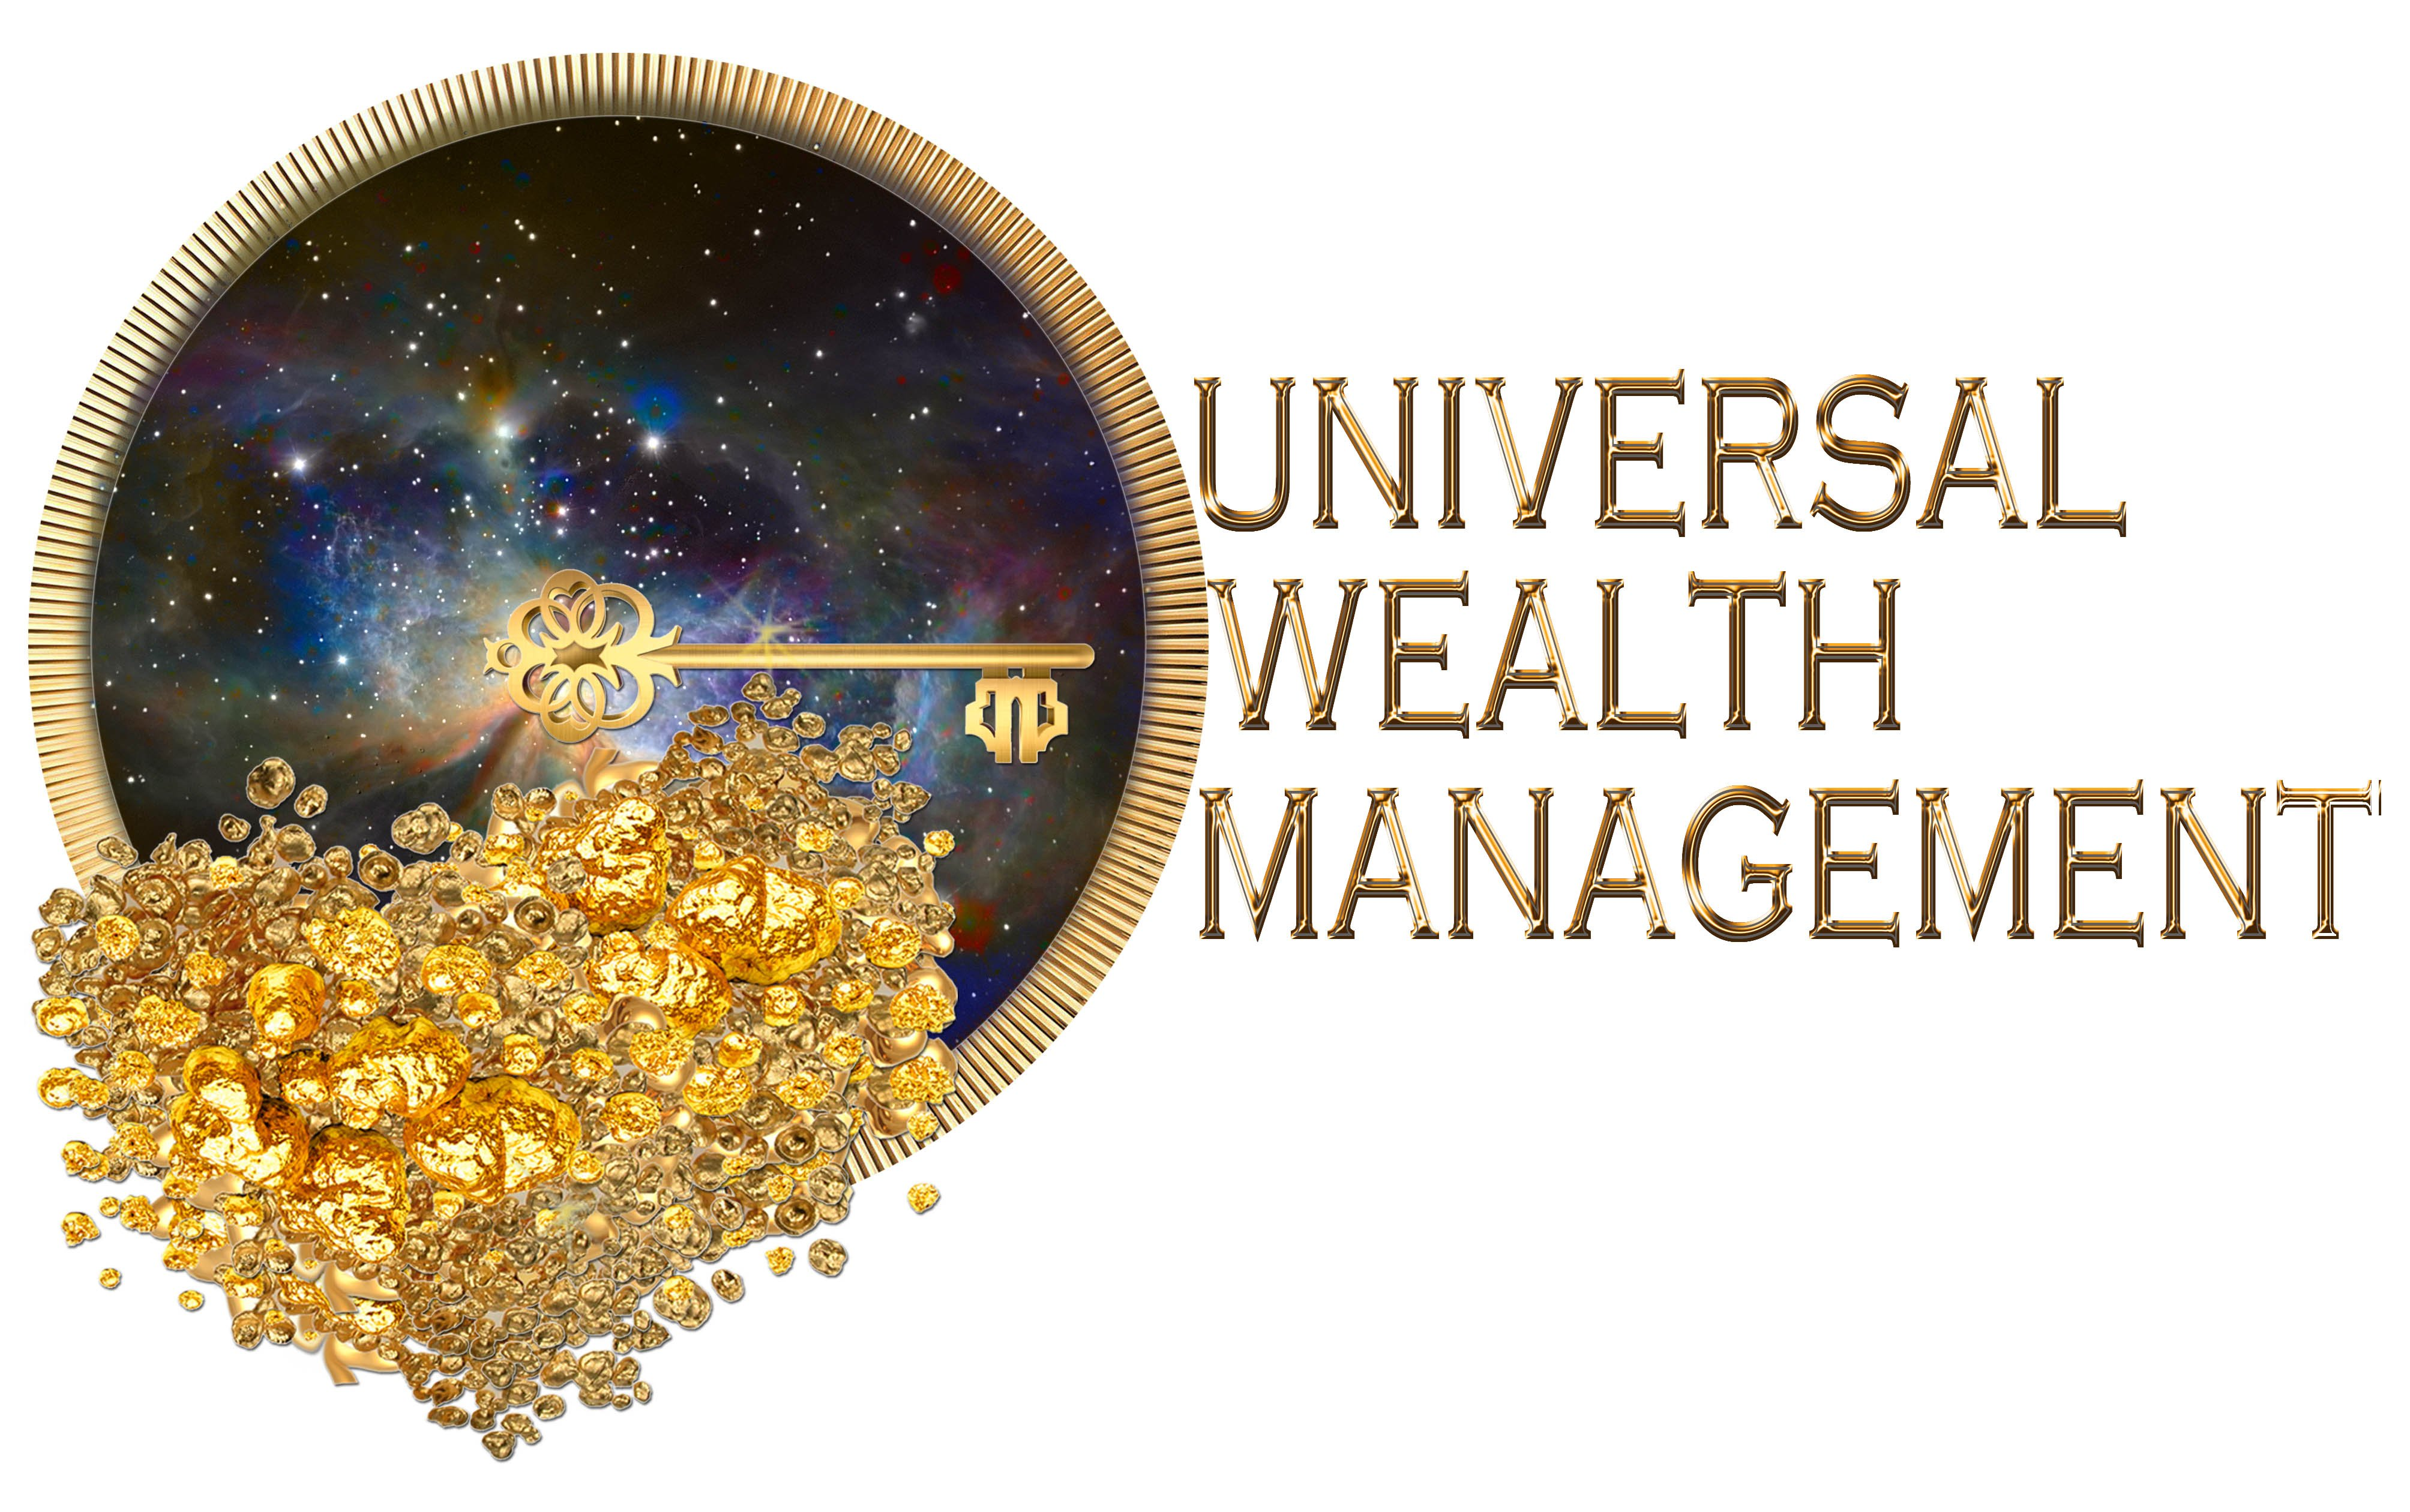 Universal Wealth Management